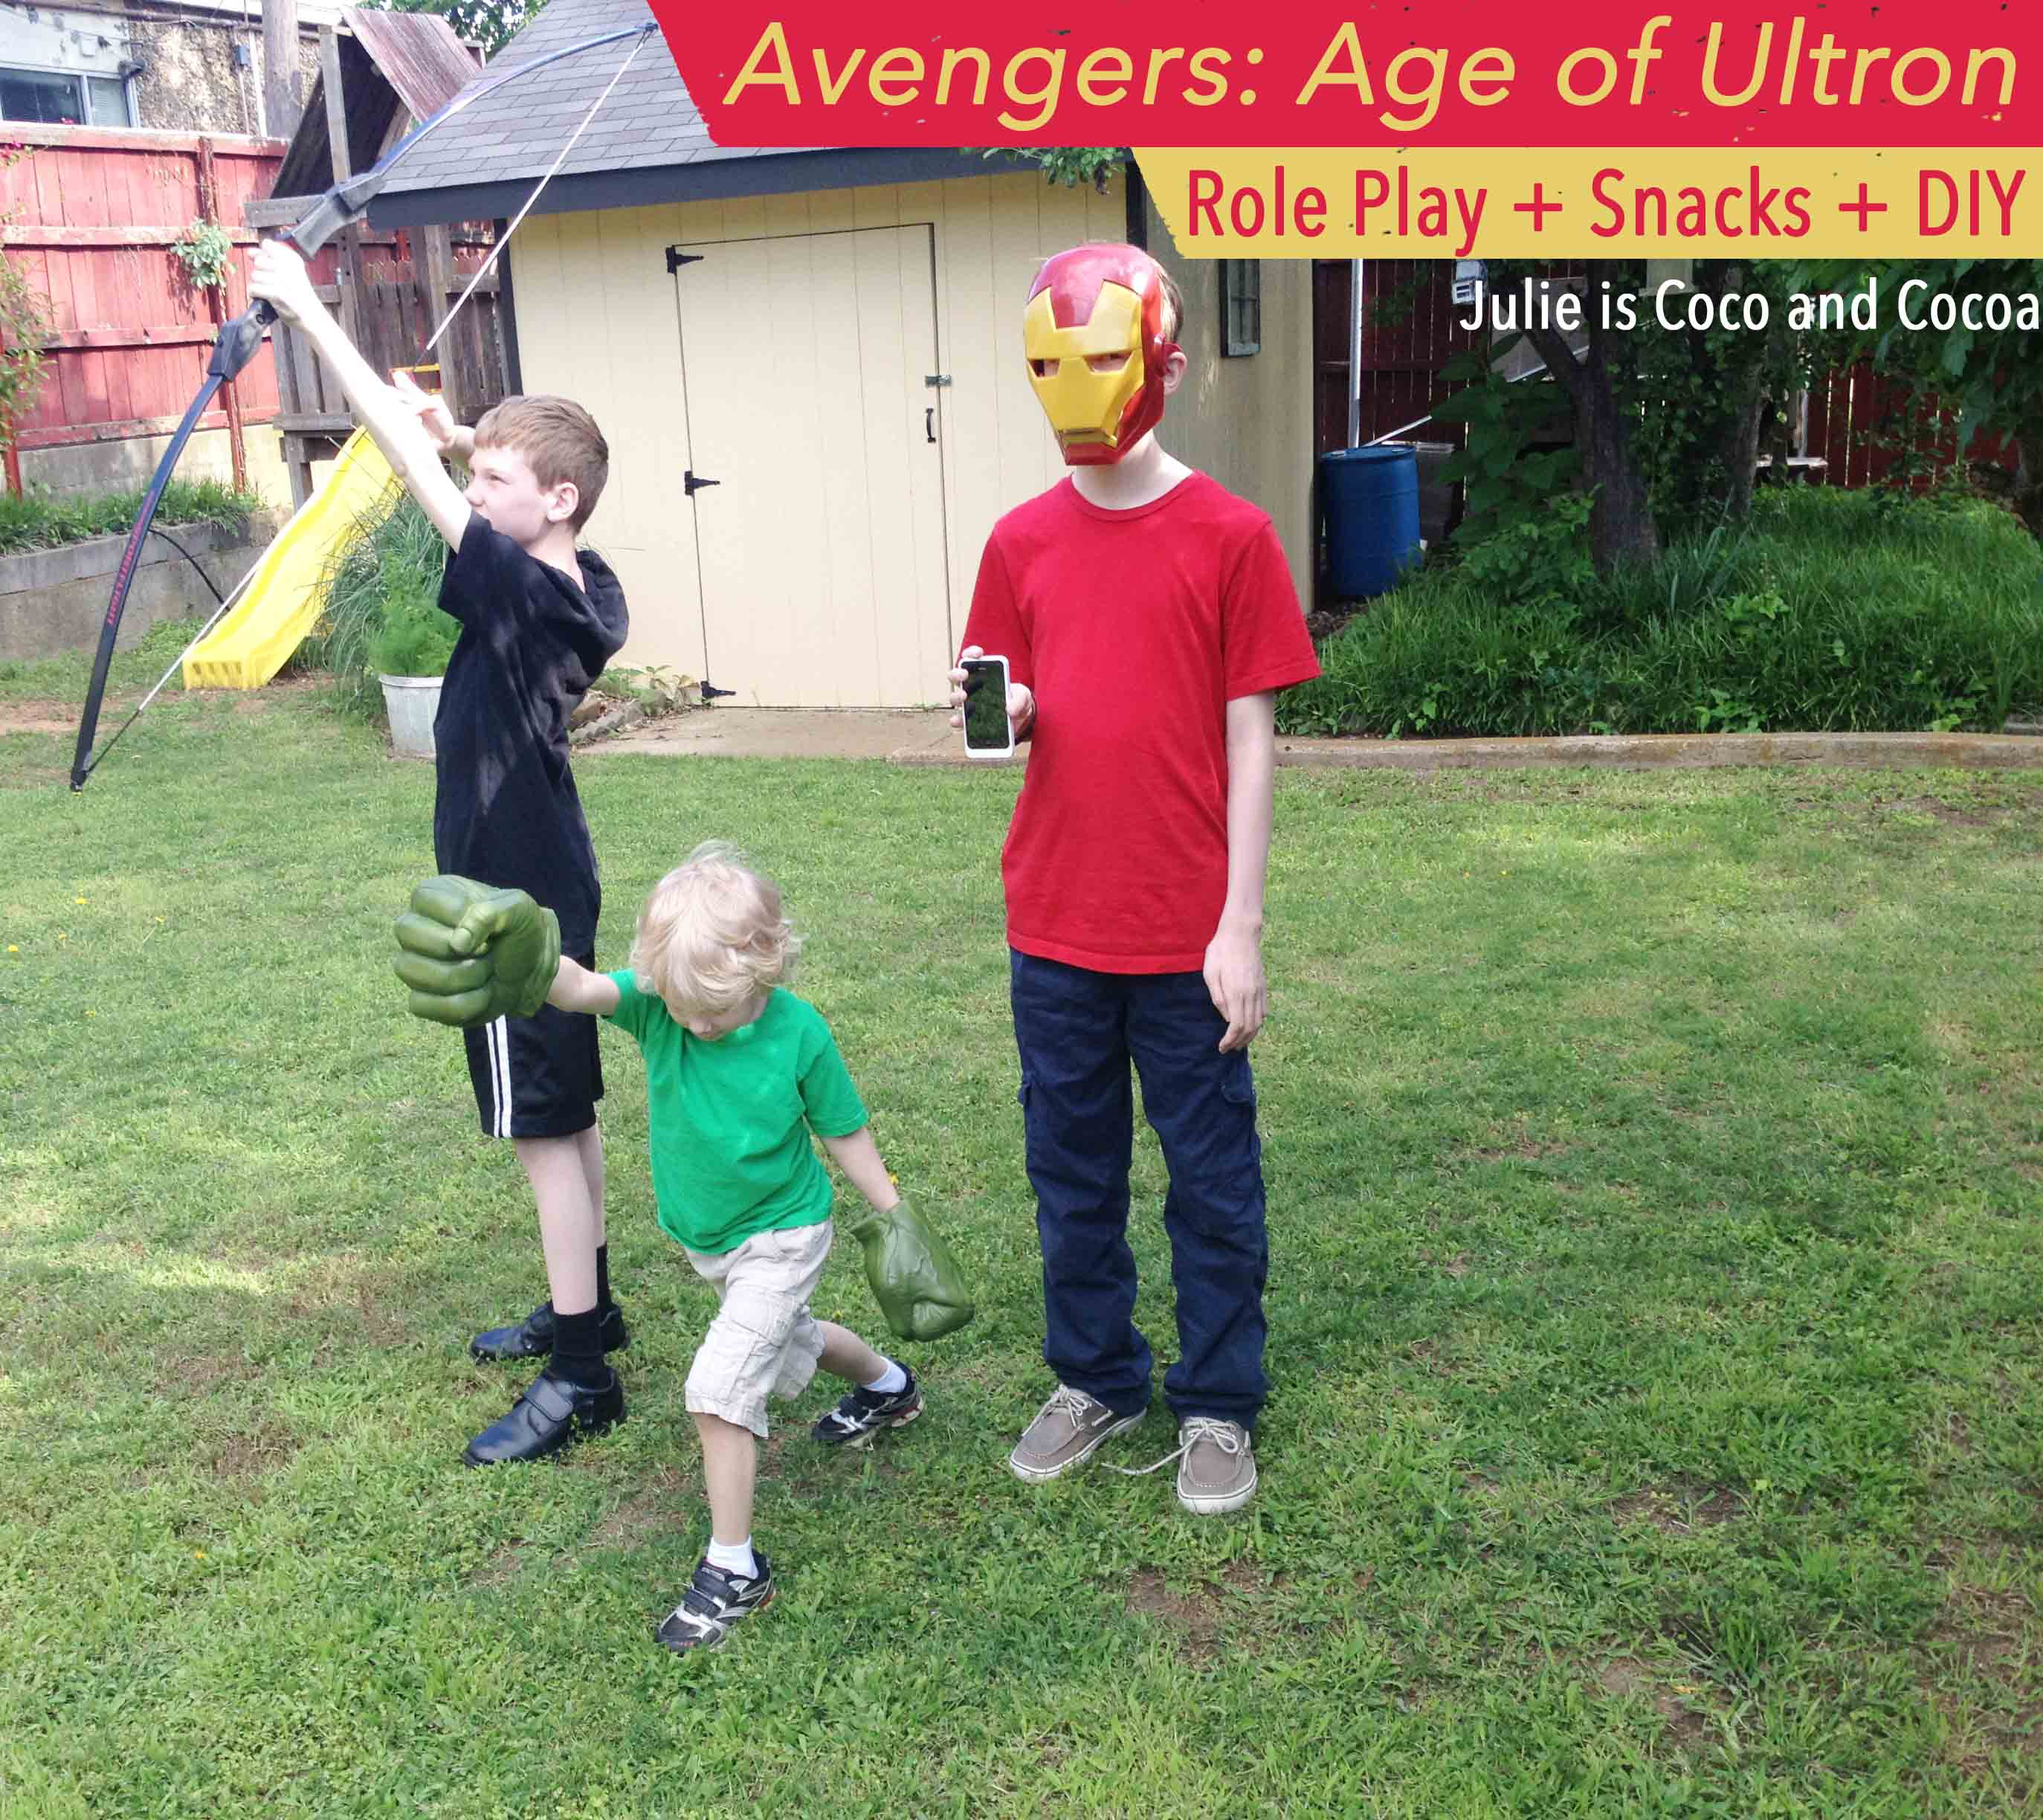 Avengers Age Of Ultron Role Play, Snacks, And A DIY